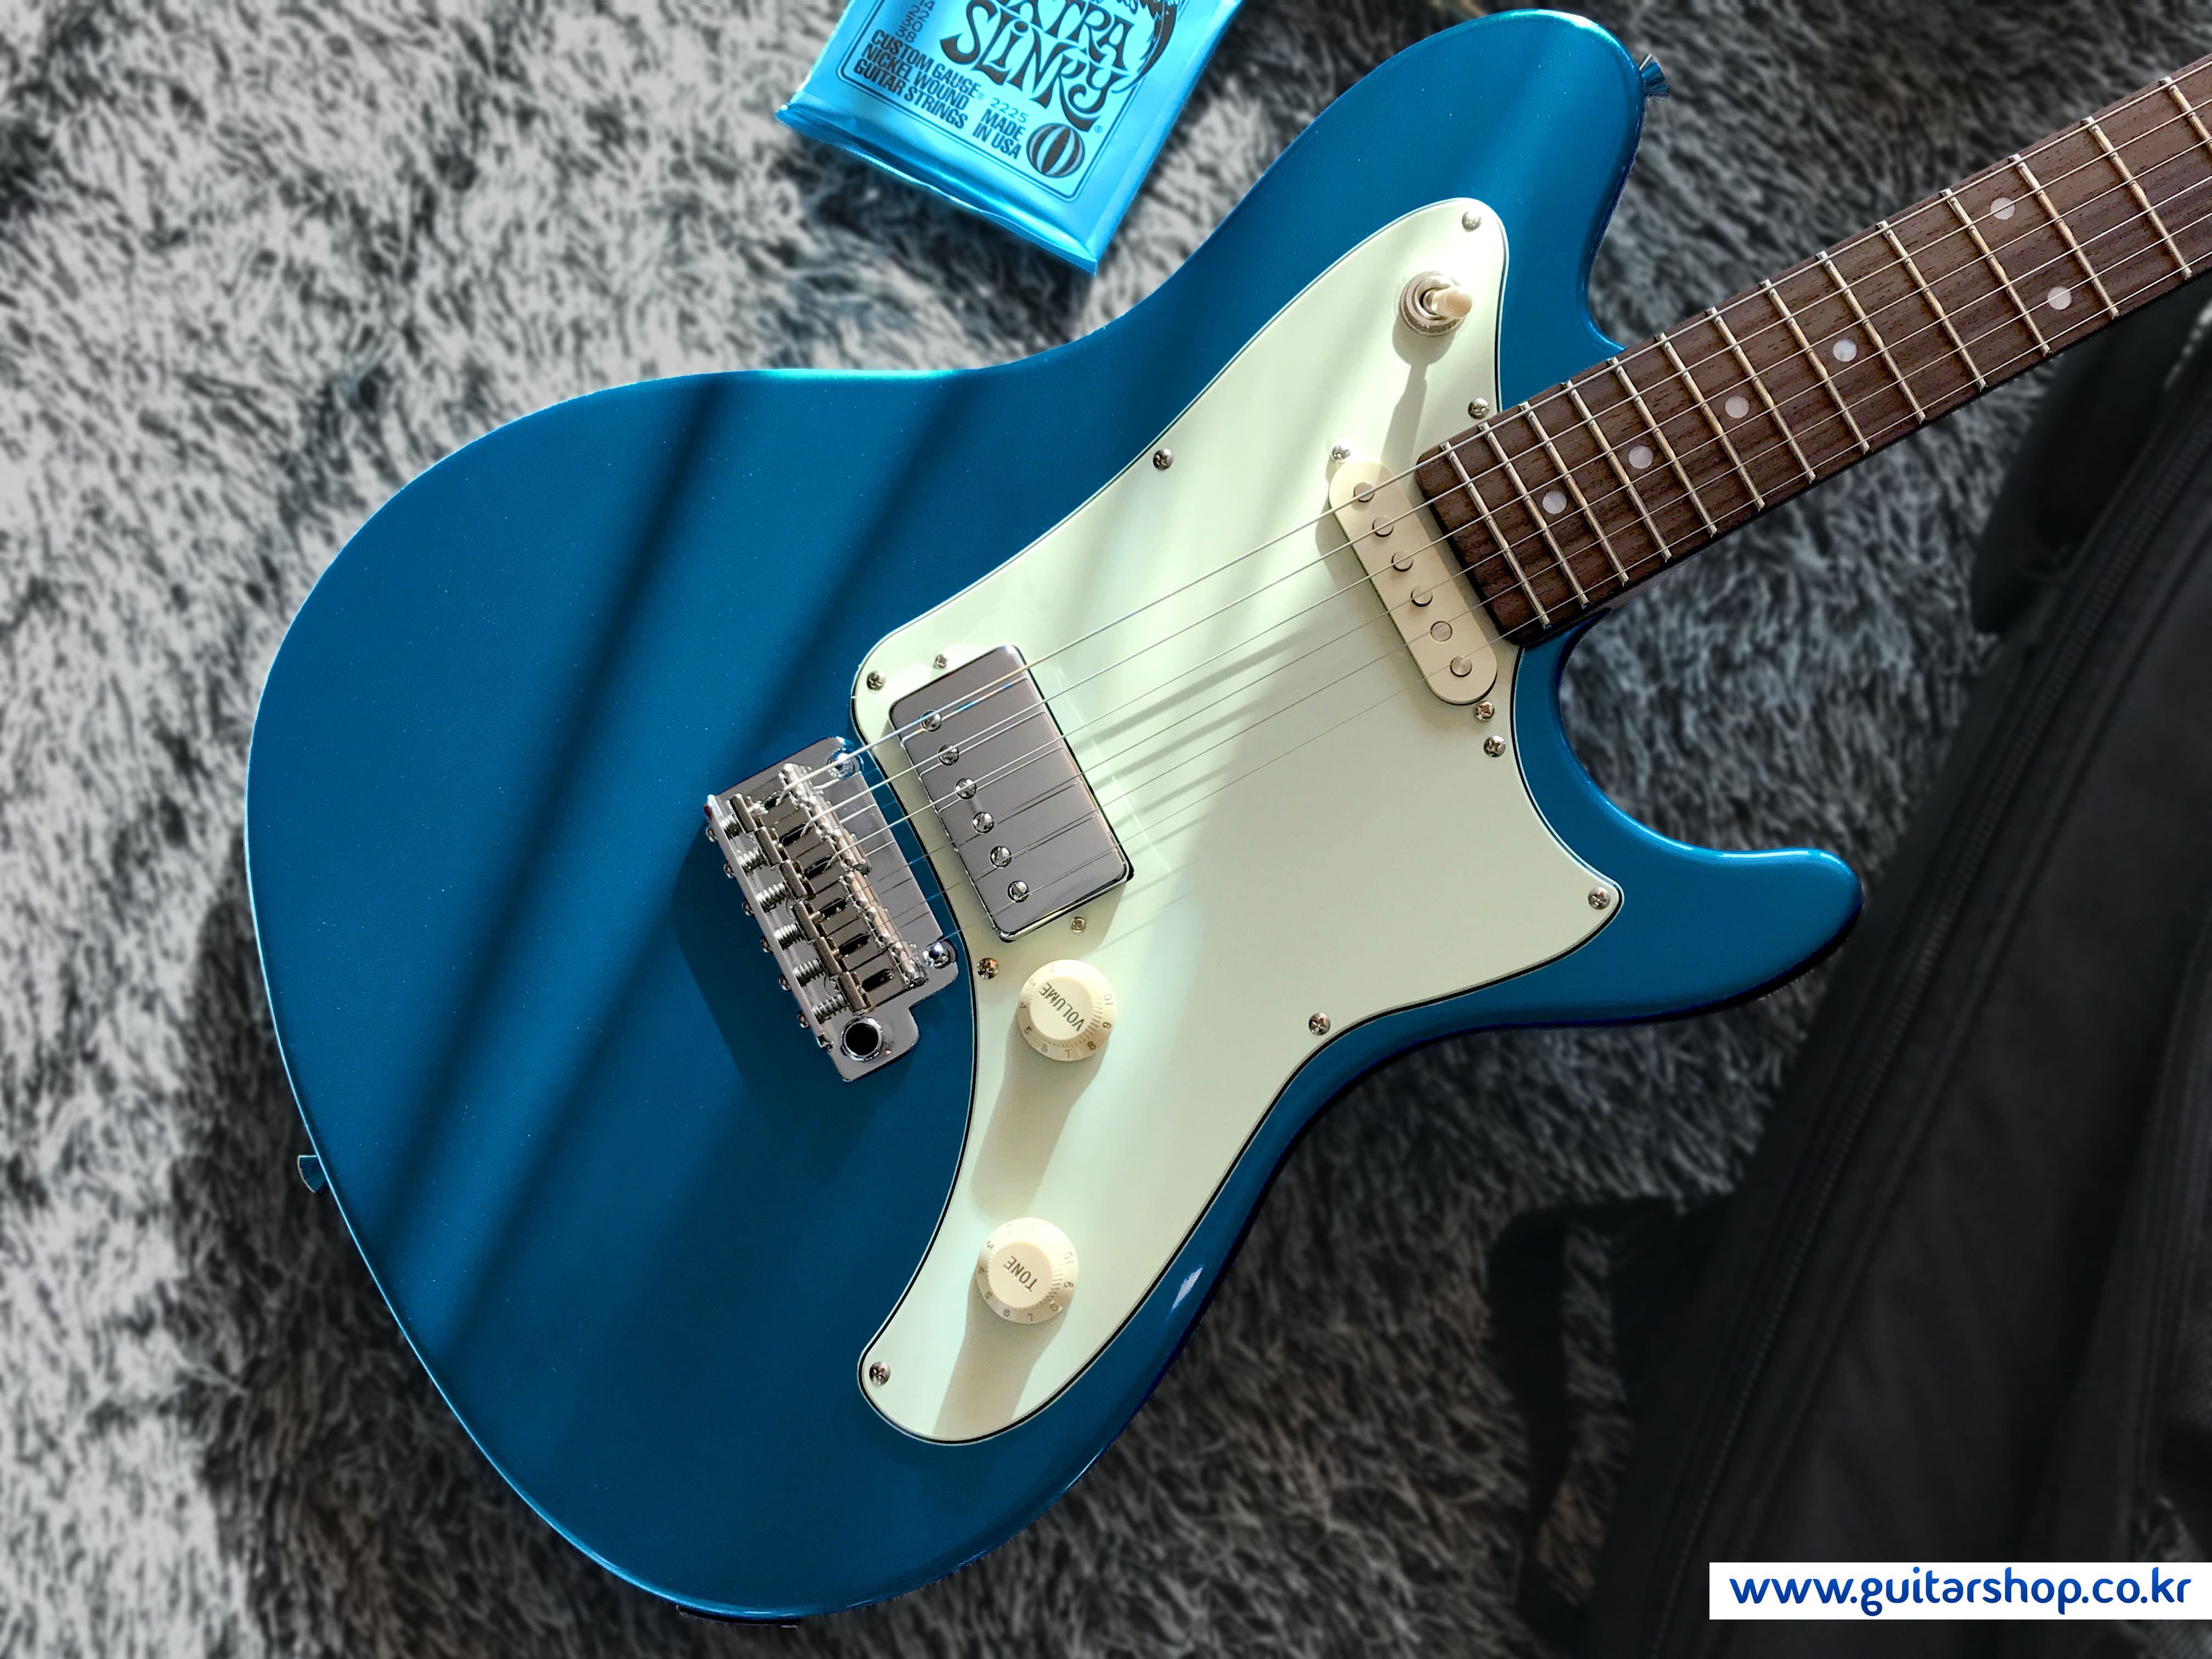 SUGI RMG GUITAR (Lake Placid Blue Color)